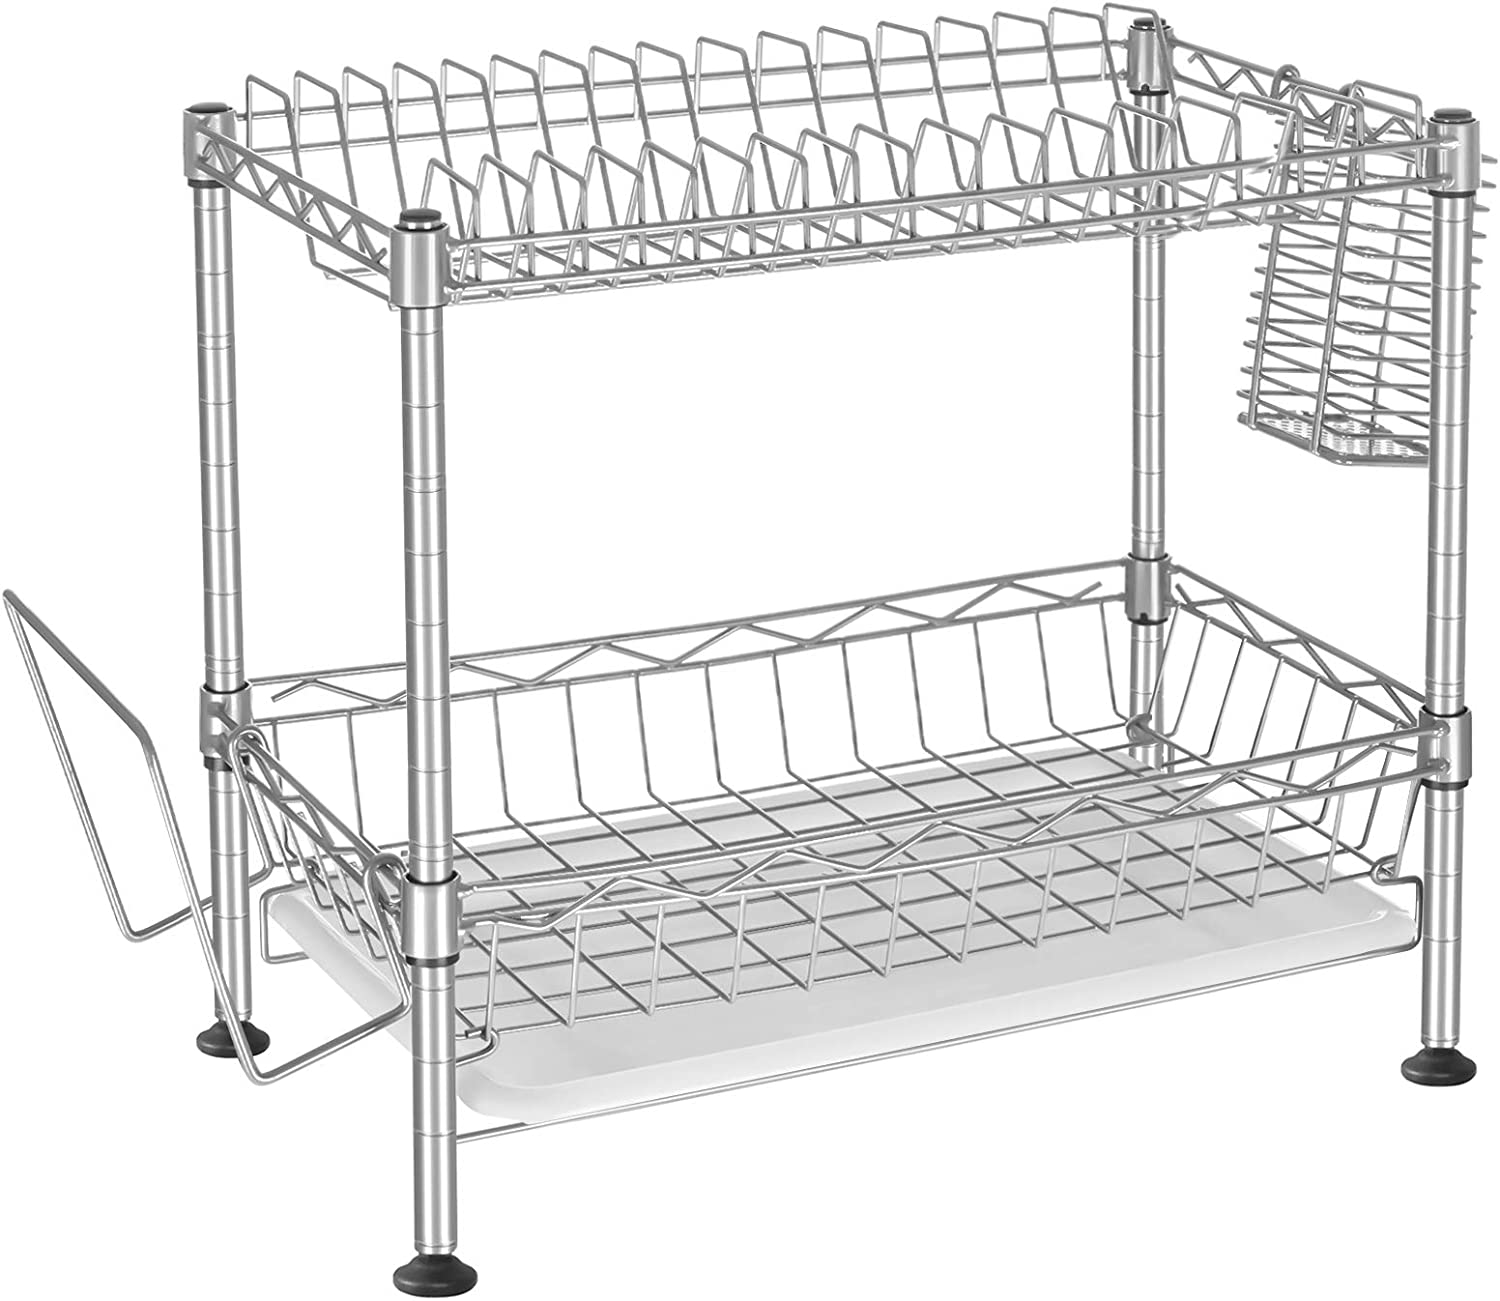 SONGMICS 2-Tier Max 62% OFF Dish Rack Drainer Cutlery Drain Tray Sacramento Mall with